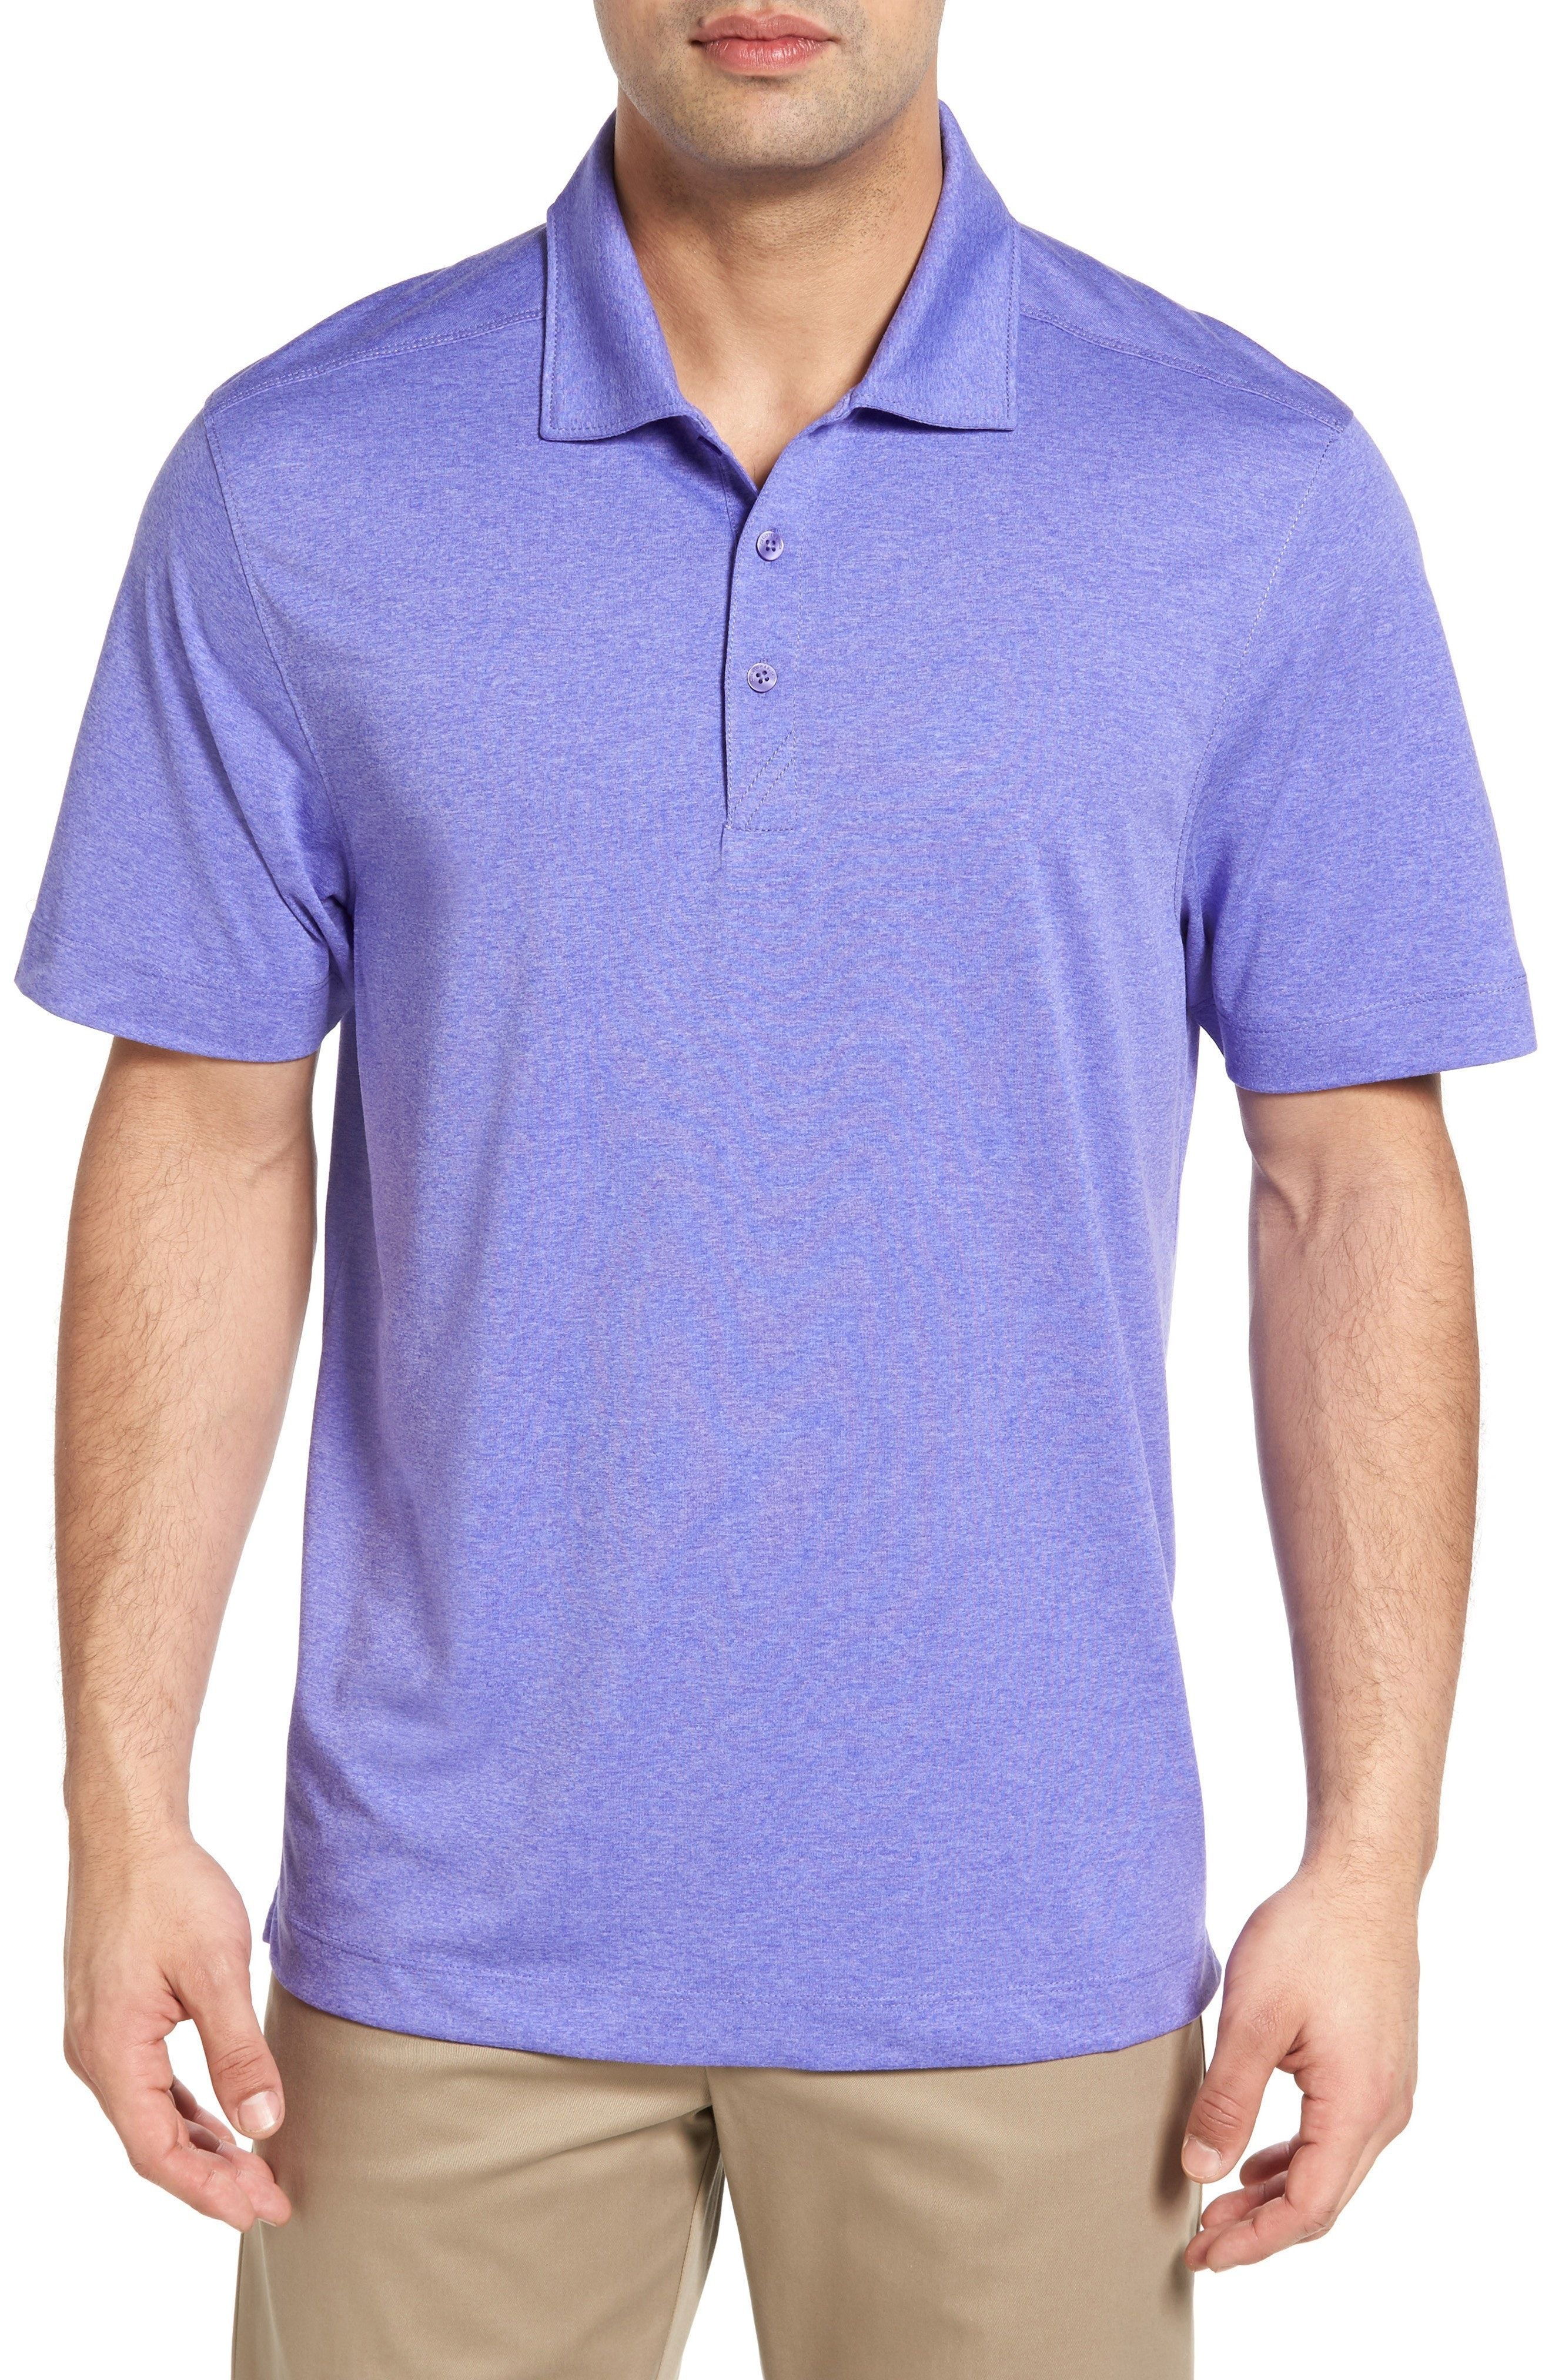 Discount In China Cutter & Buck 'Chelan' DryTec Polo (Online Only) Clearance Online Cheap Real KikG5BO